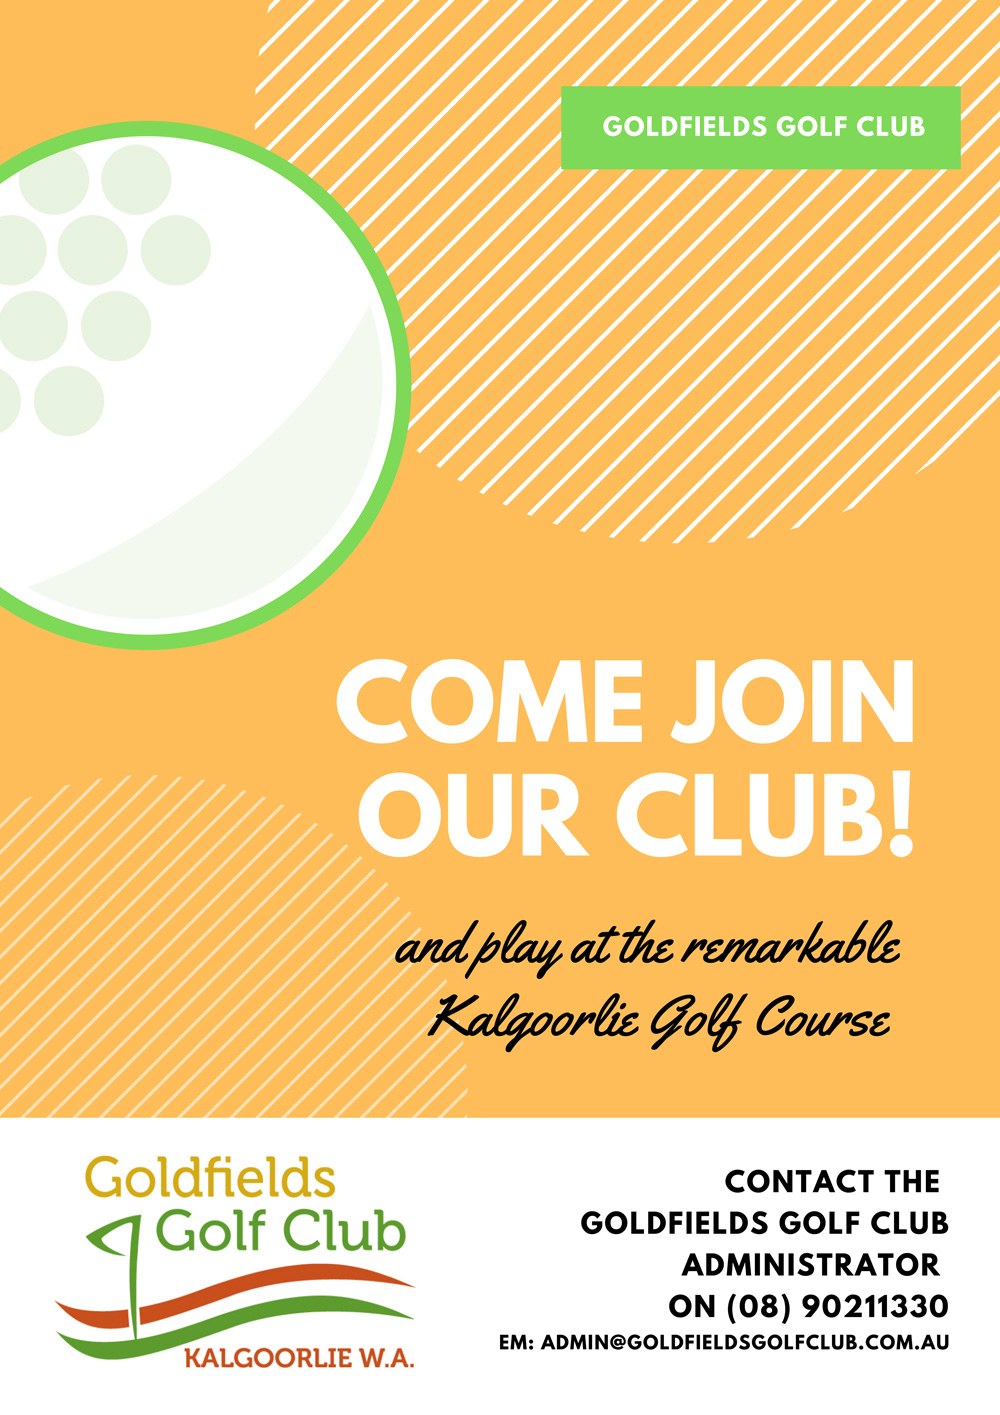 Come Join our Club